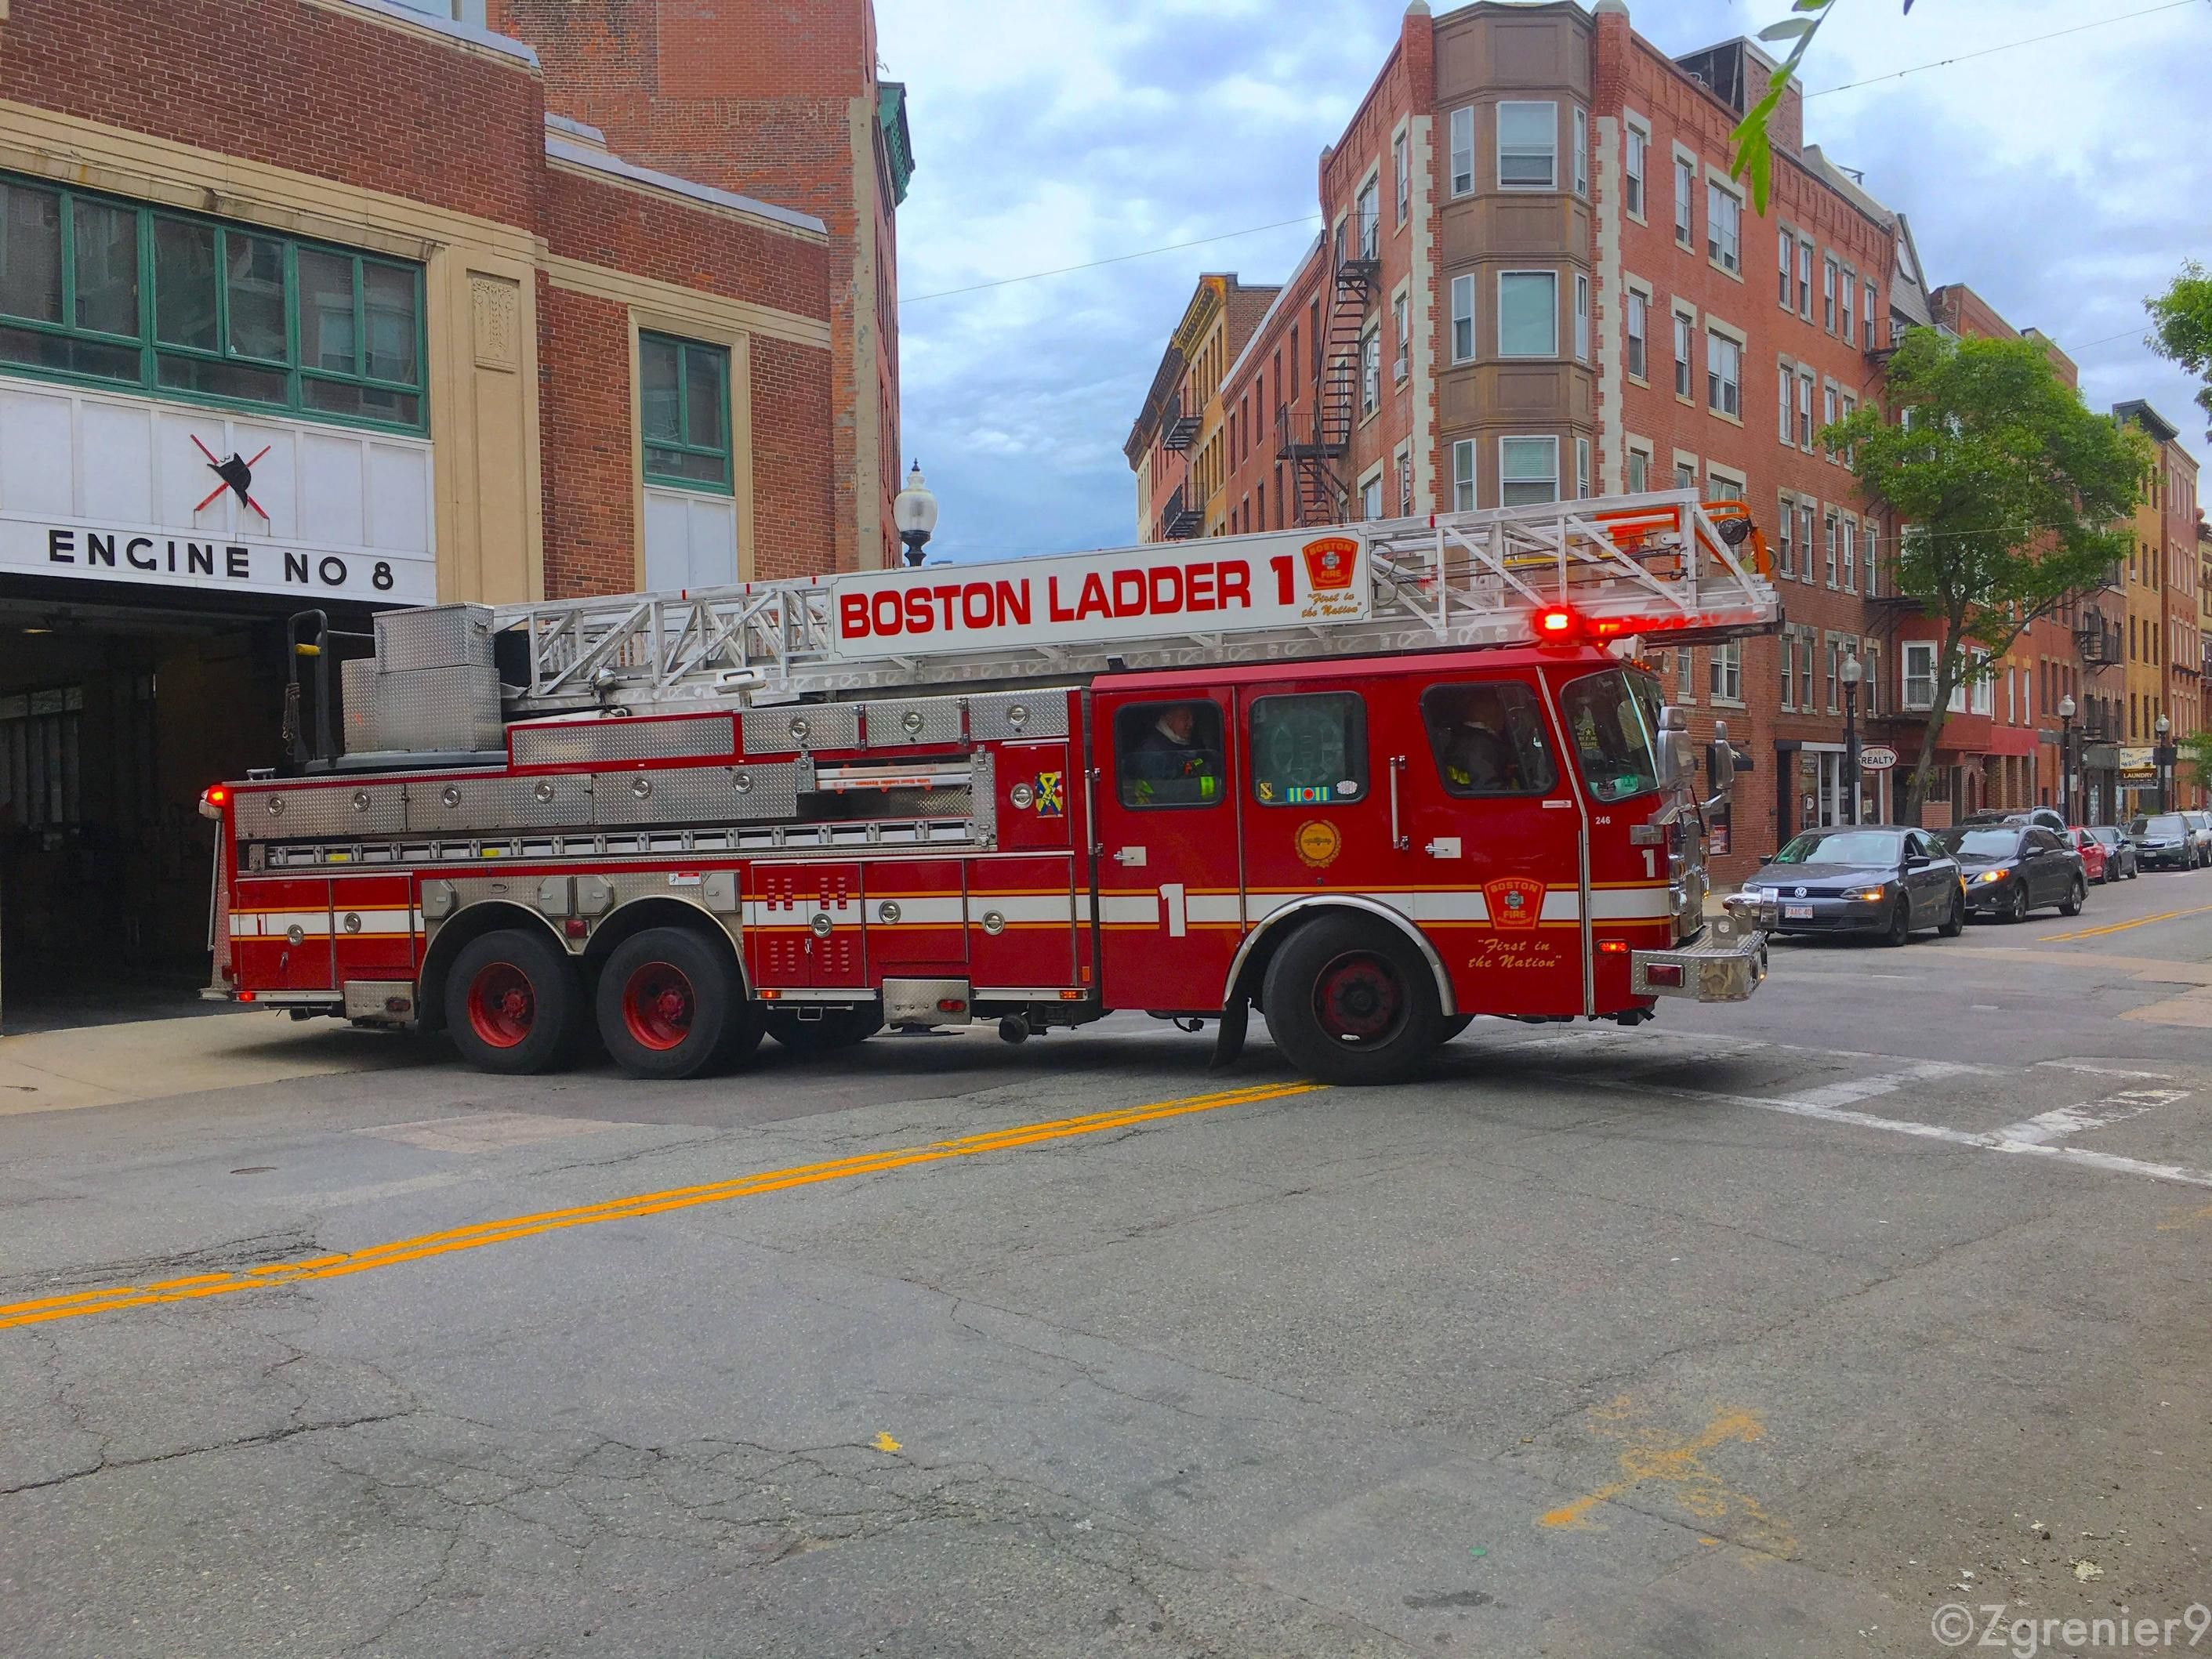 Boston Fire Department Ladder 1 4032 X 3024 High Quality Wallpapers Fire Rescue Wallpaper